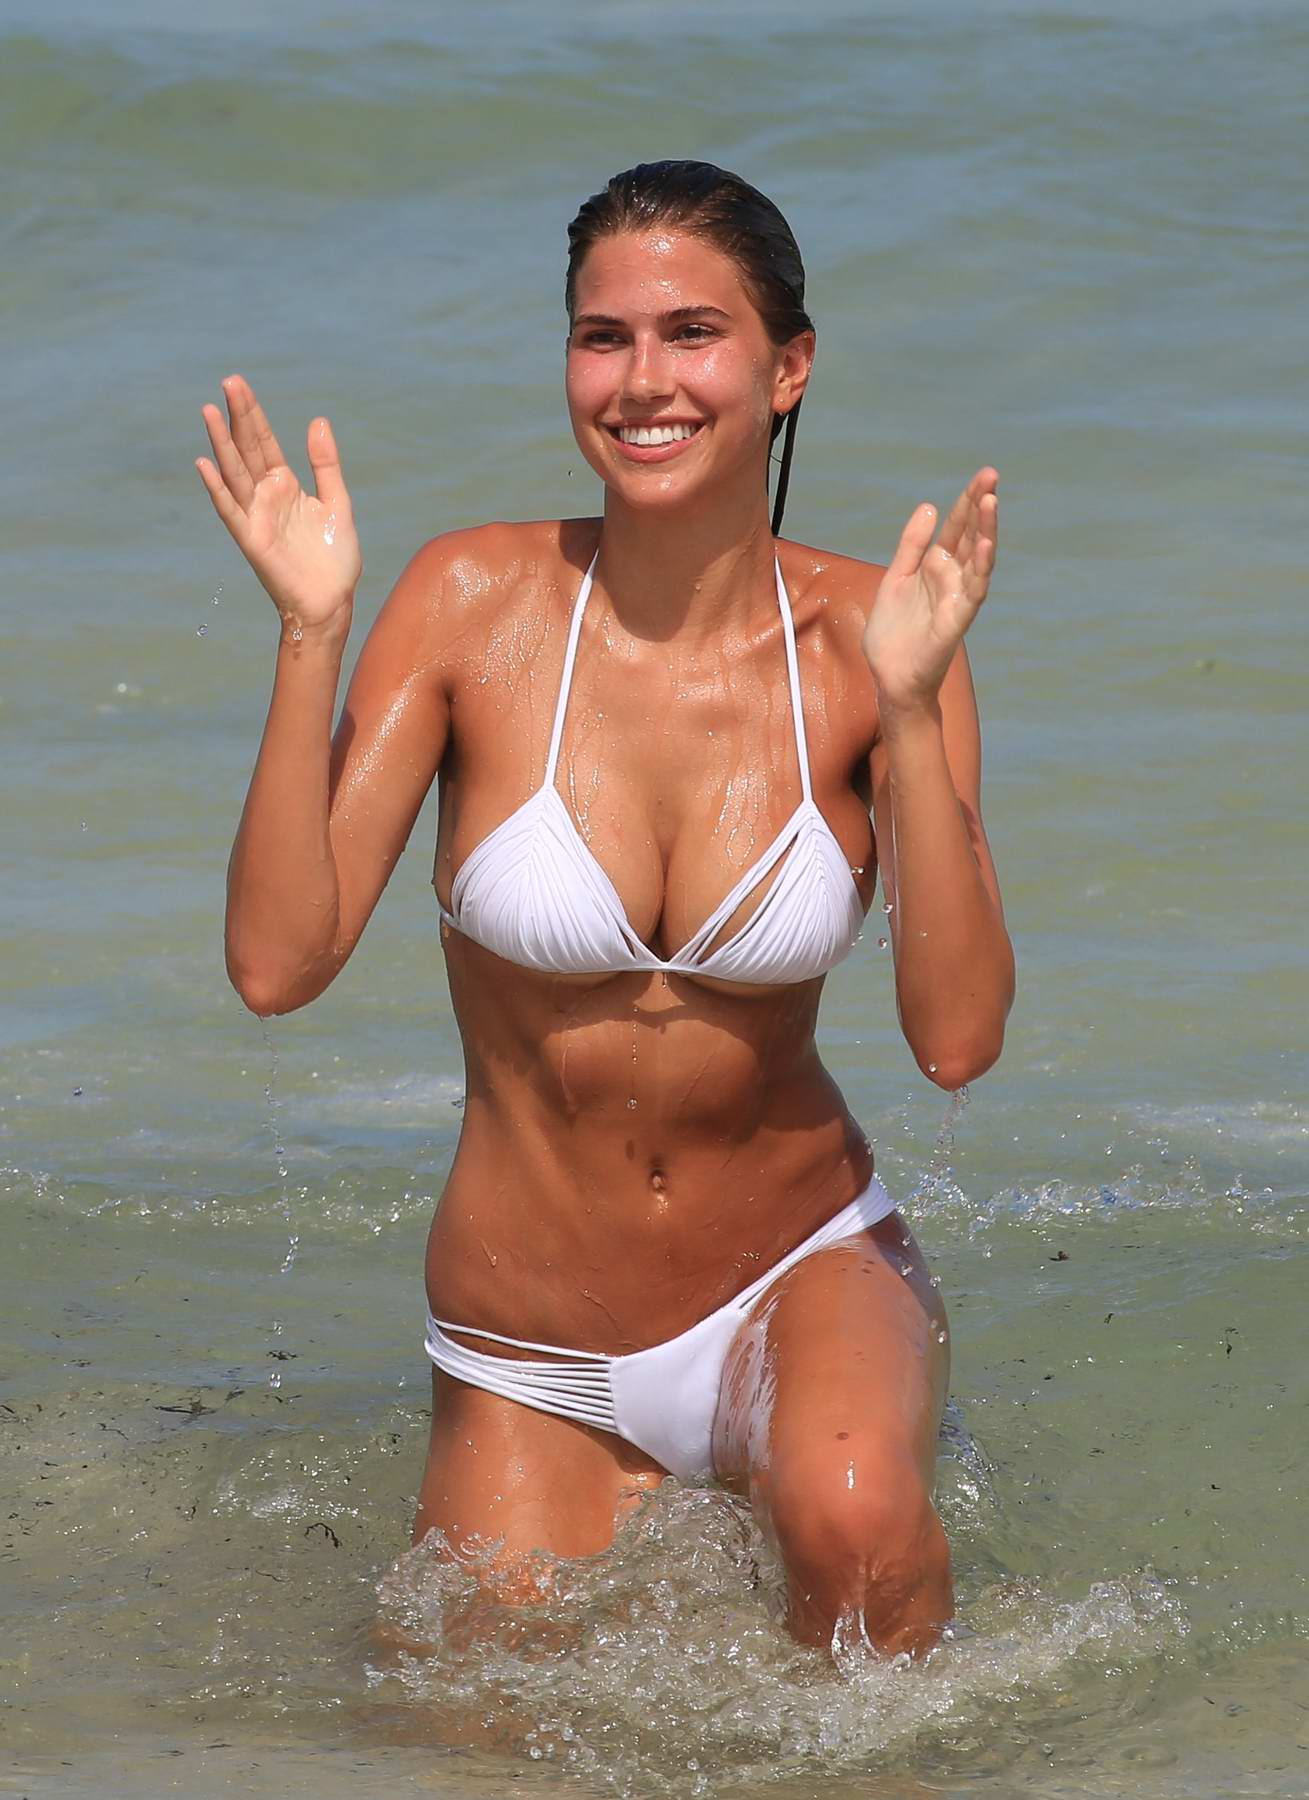 Kara Del Toro in a White Bikini enjoying the Beach in Miami